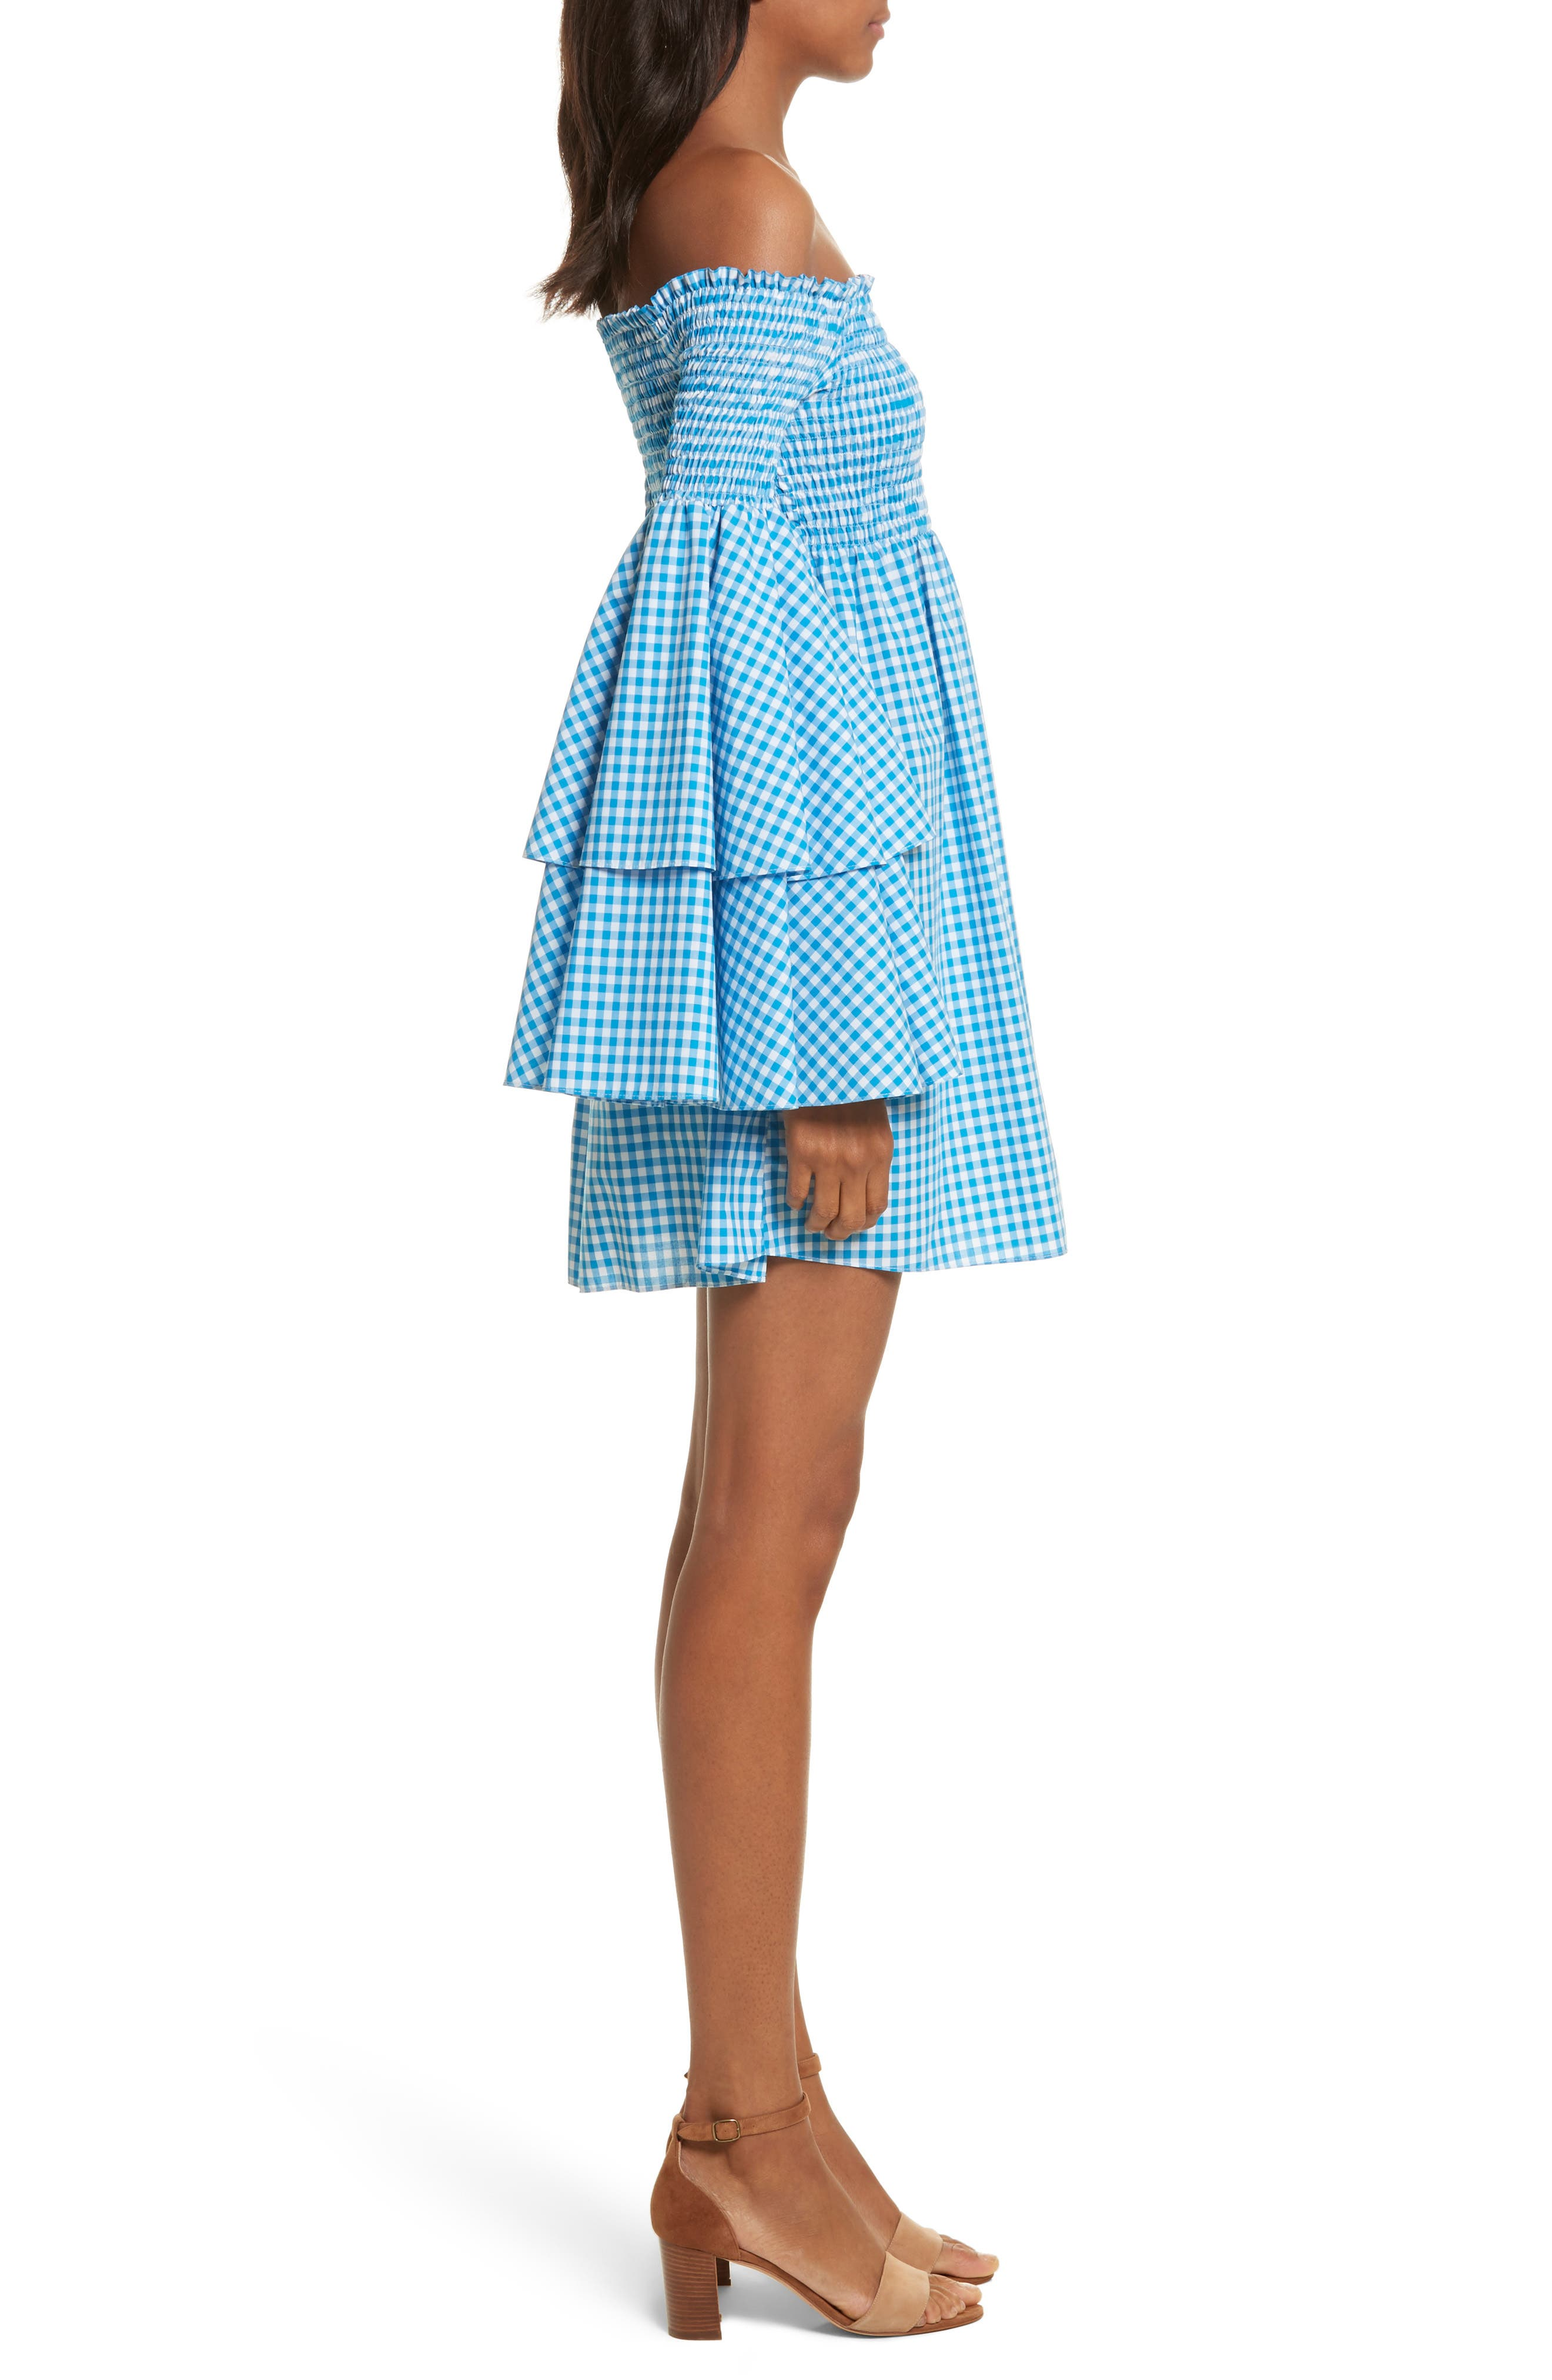 Appolonia Gingham Off the Shoulder Dress,                             Alternate thumbnail 3, color,                             451